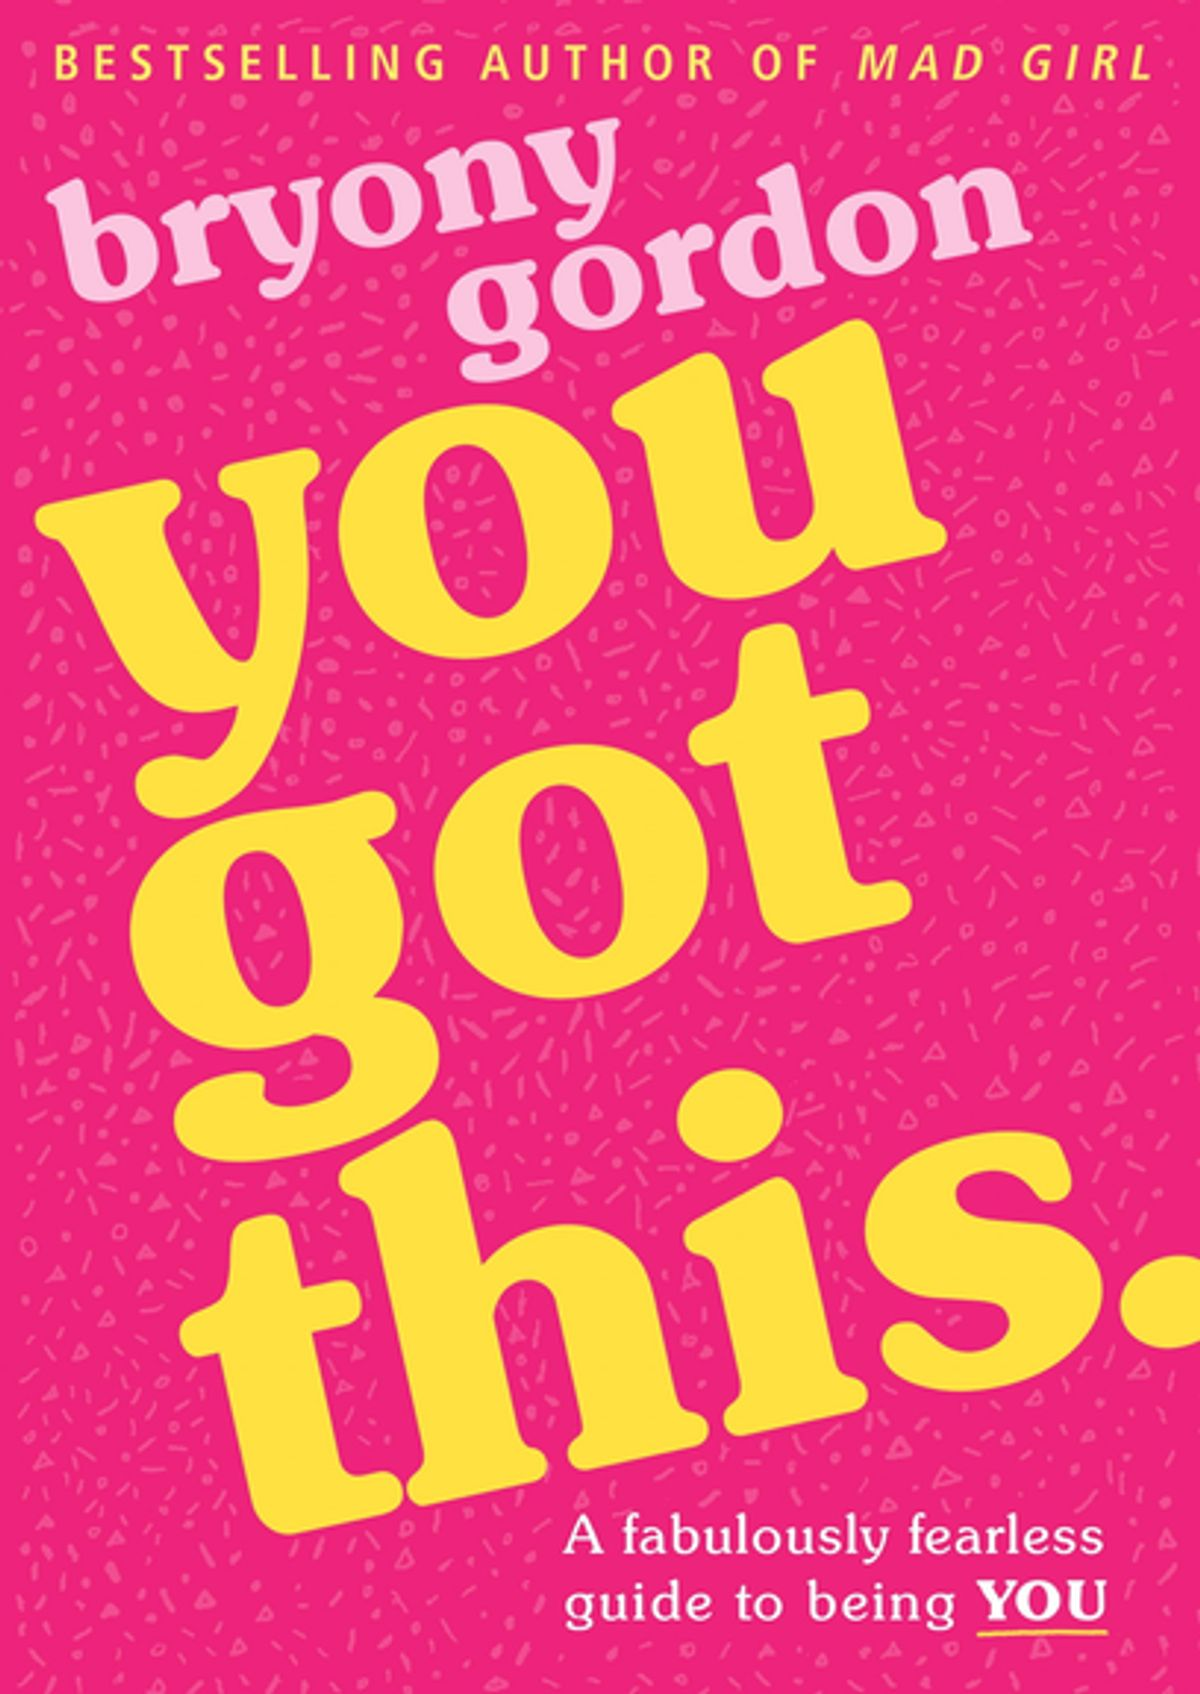 You Got This by Bryony Gordon